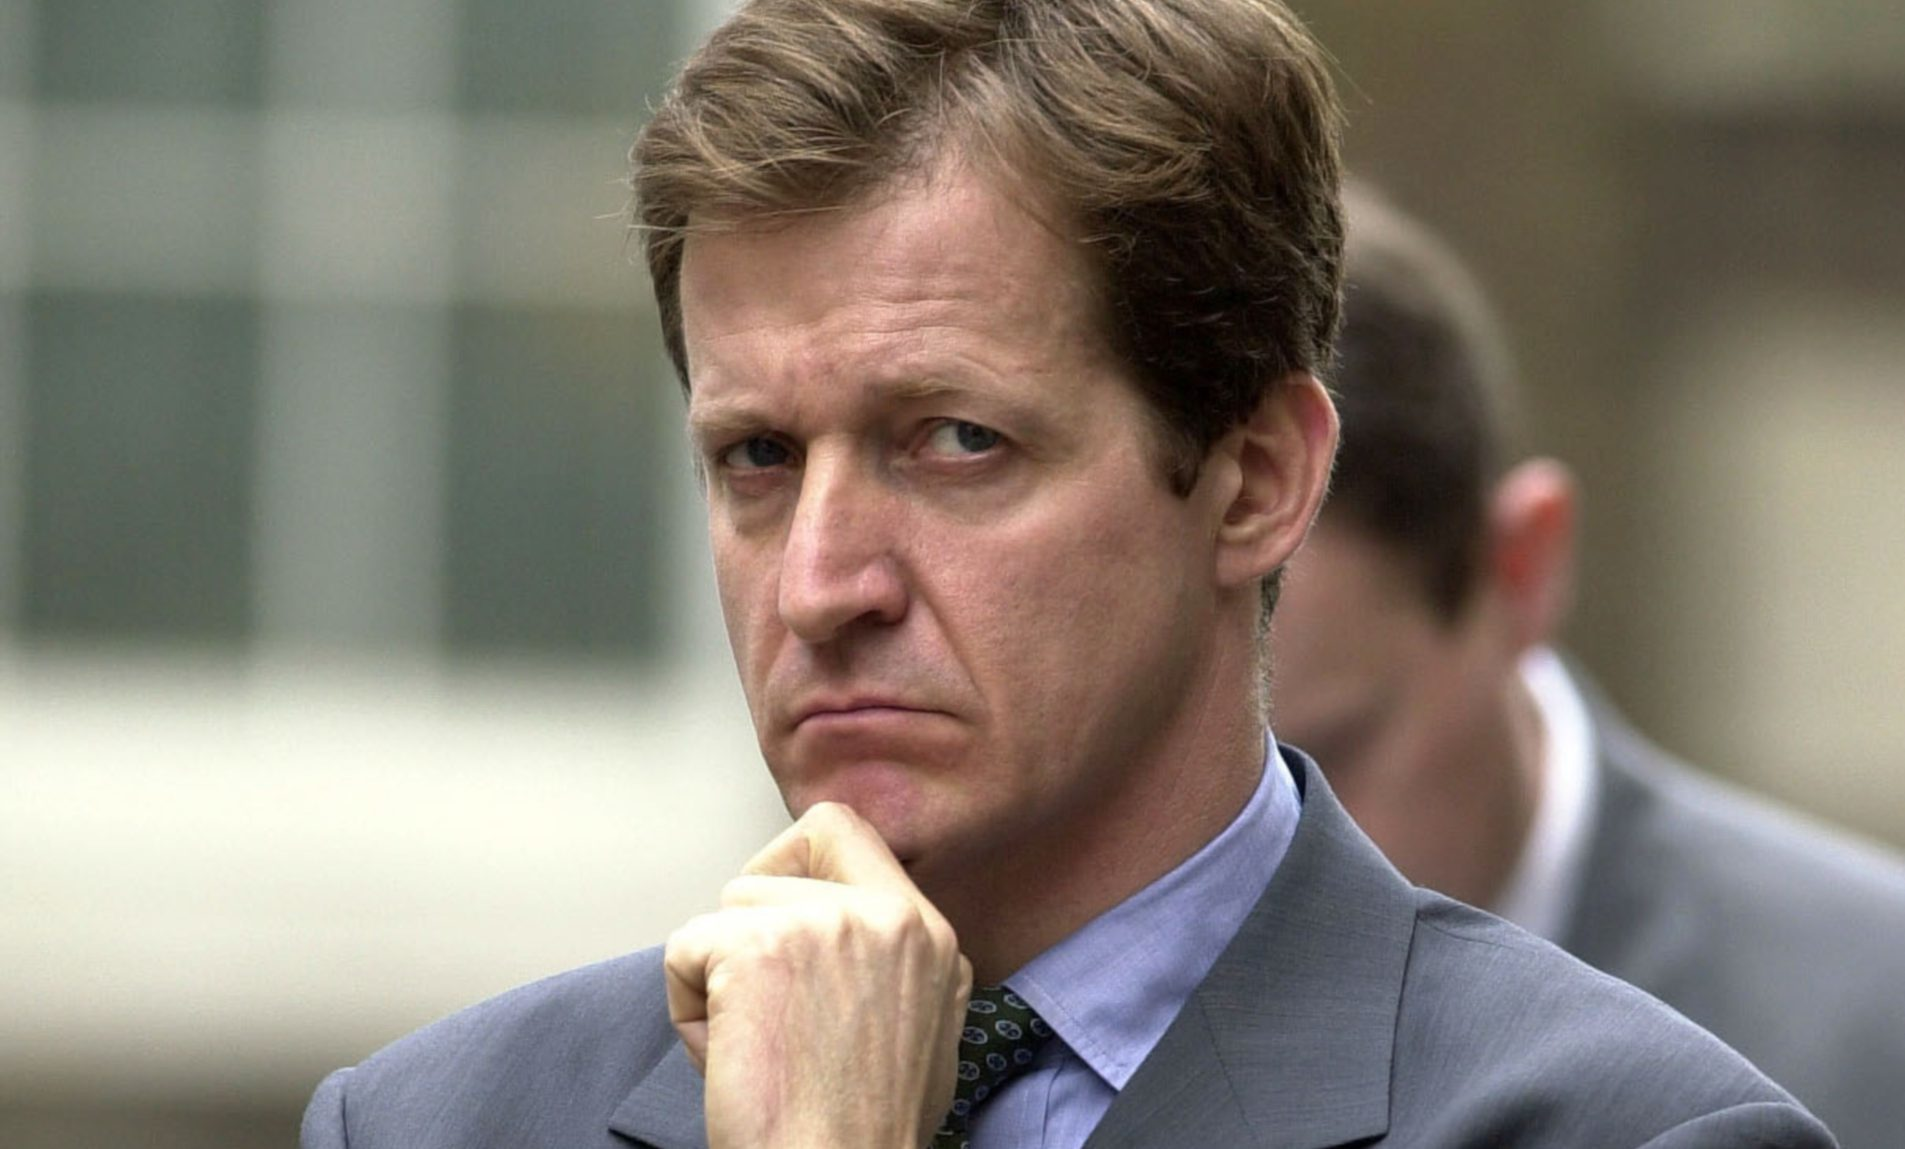 Alastair Campbell, during his time as director of communications and strategy for Tony Blair.